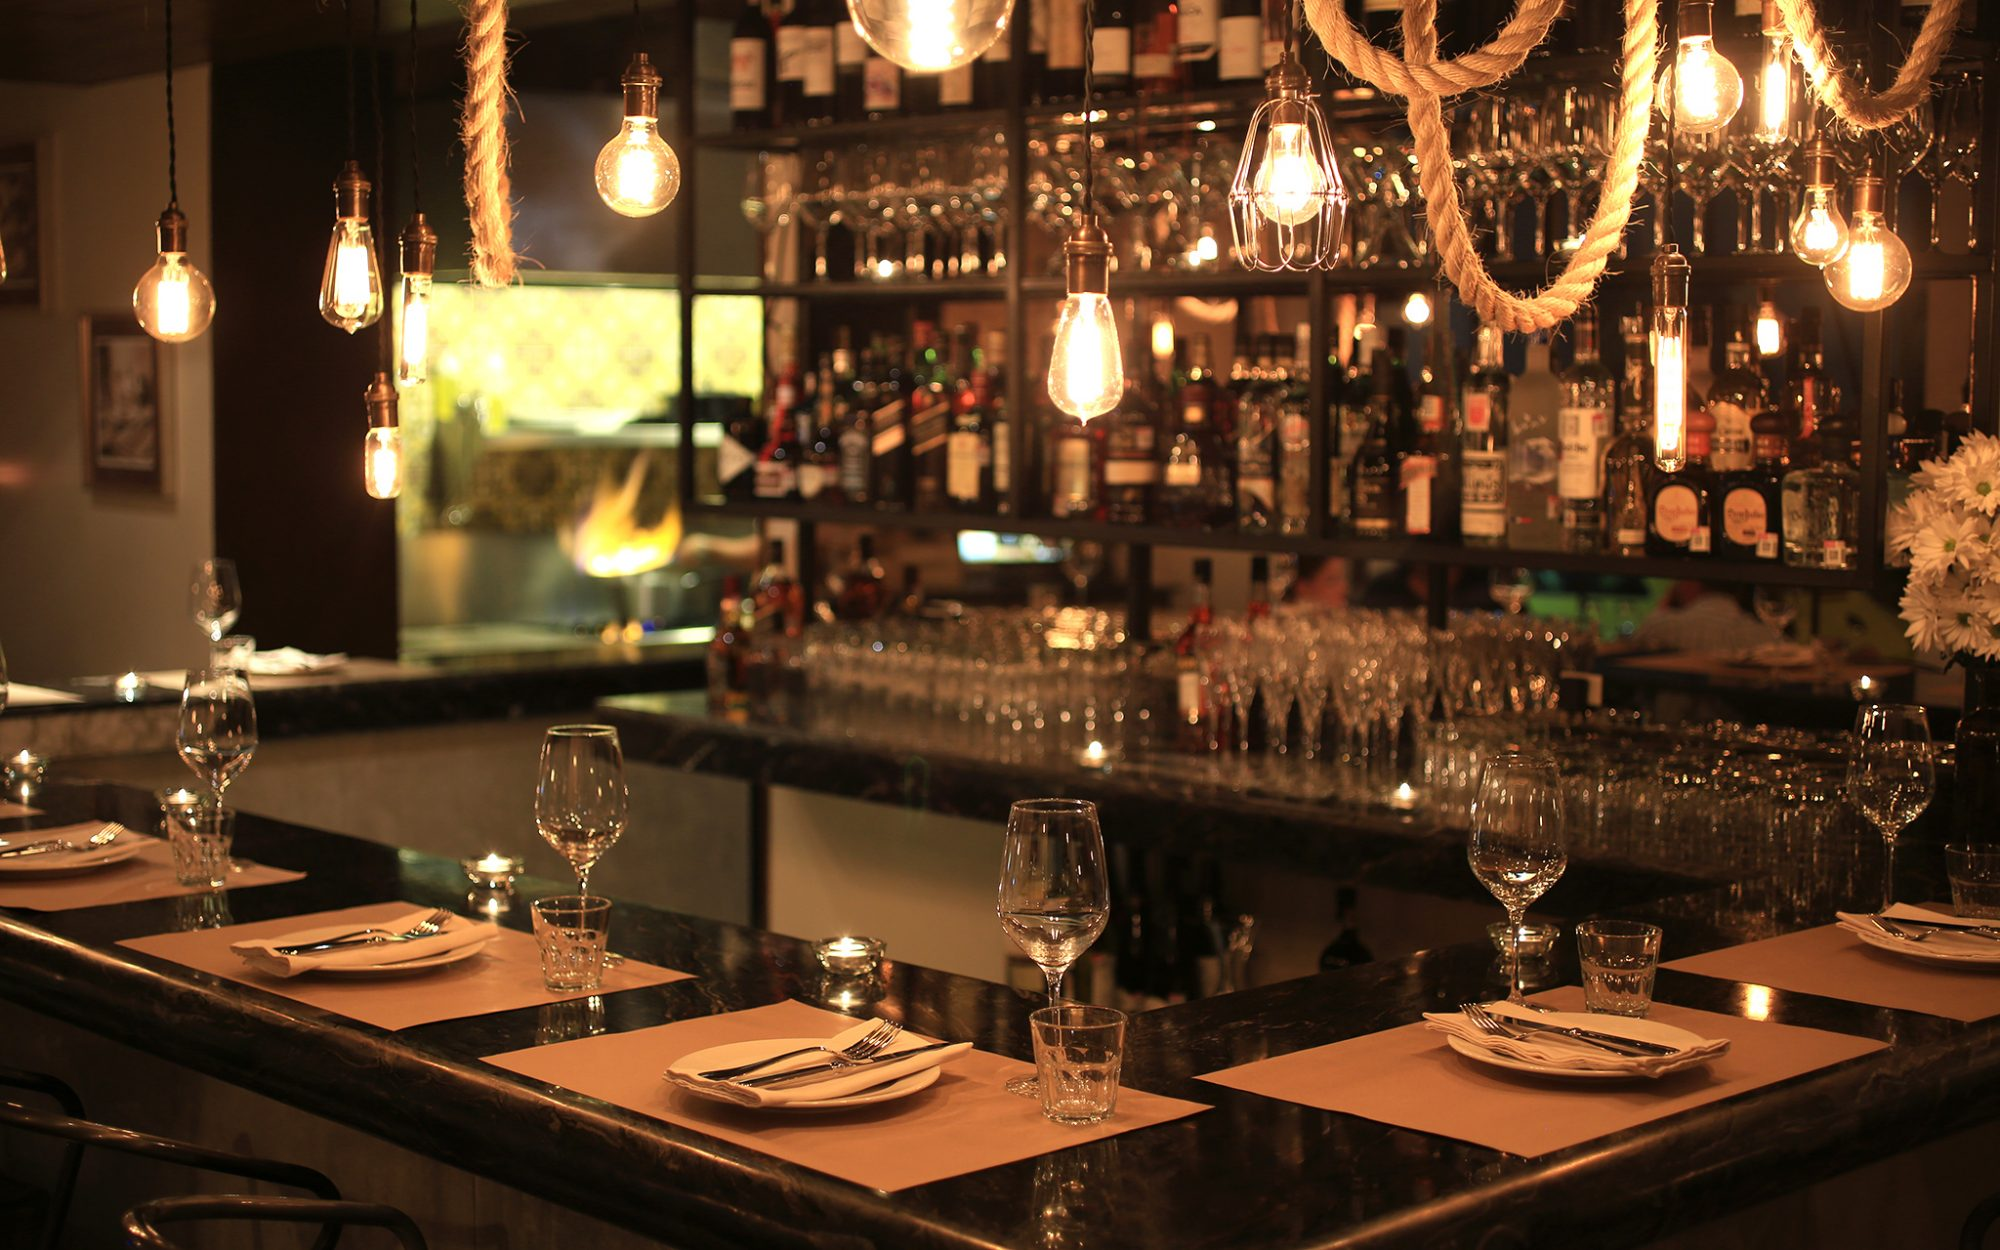 Saturday: 8 p.m. | Dinner at Oliva Enoteca